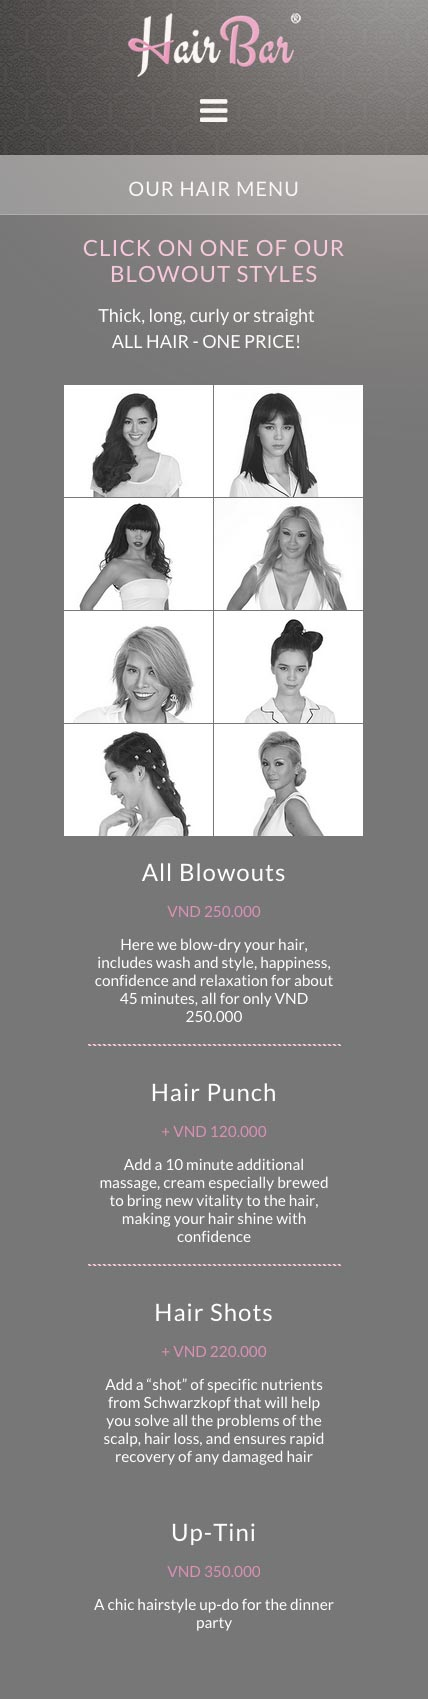 Hair Bar website mobile